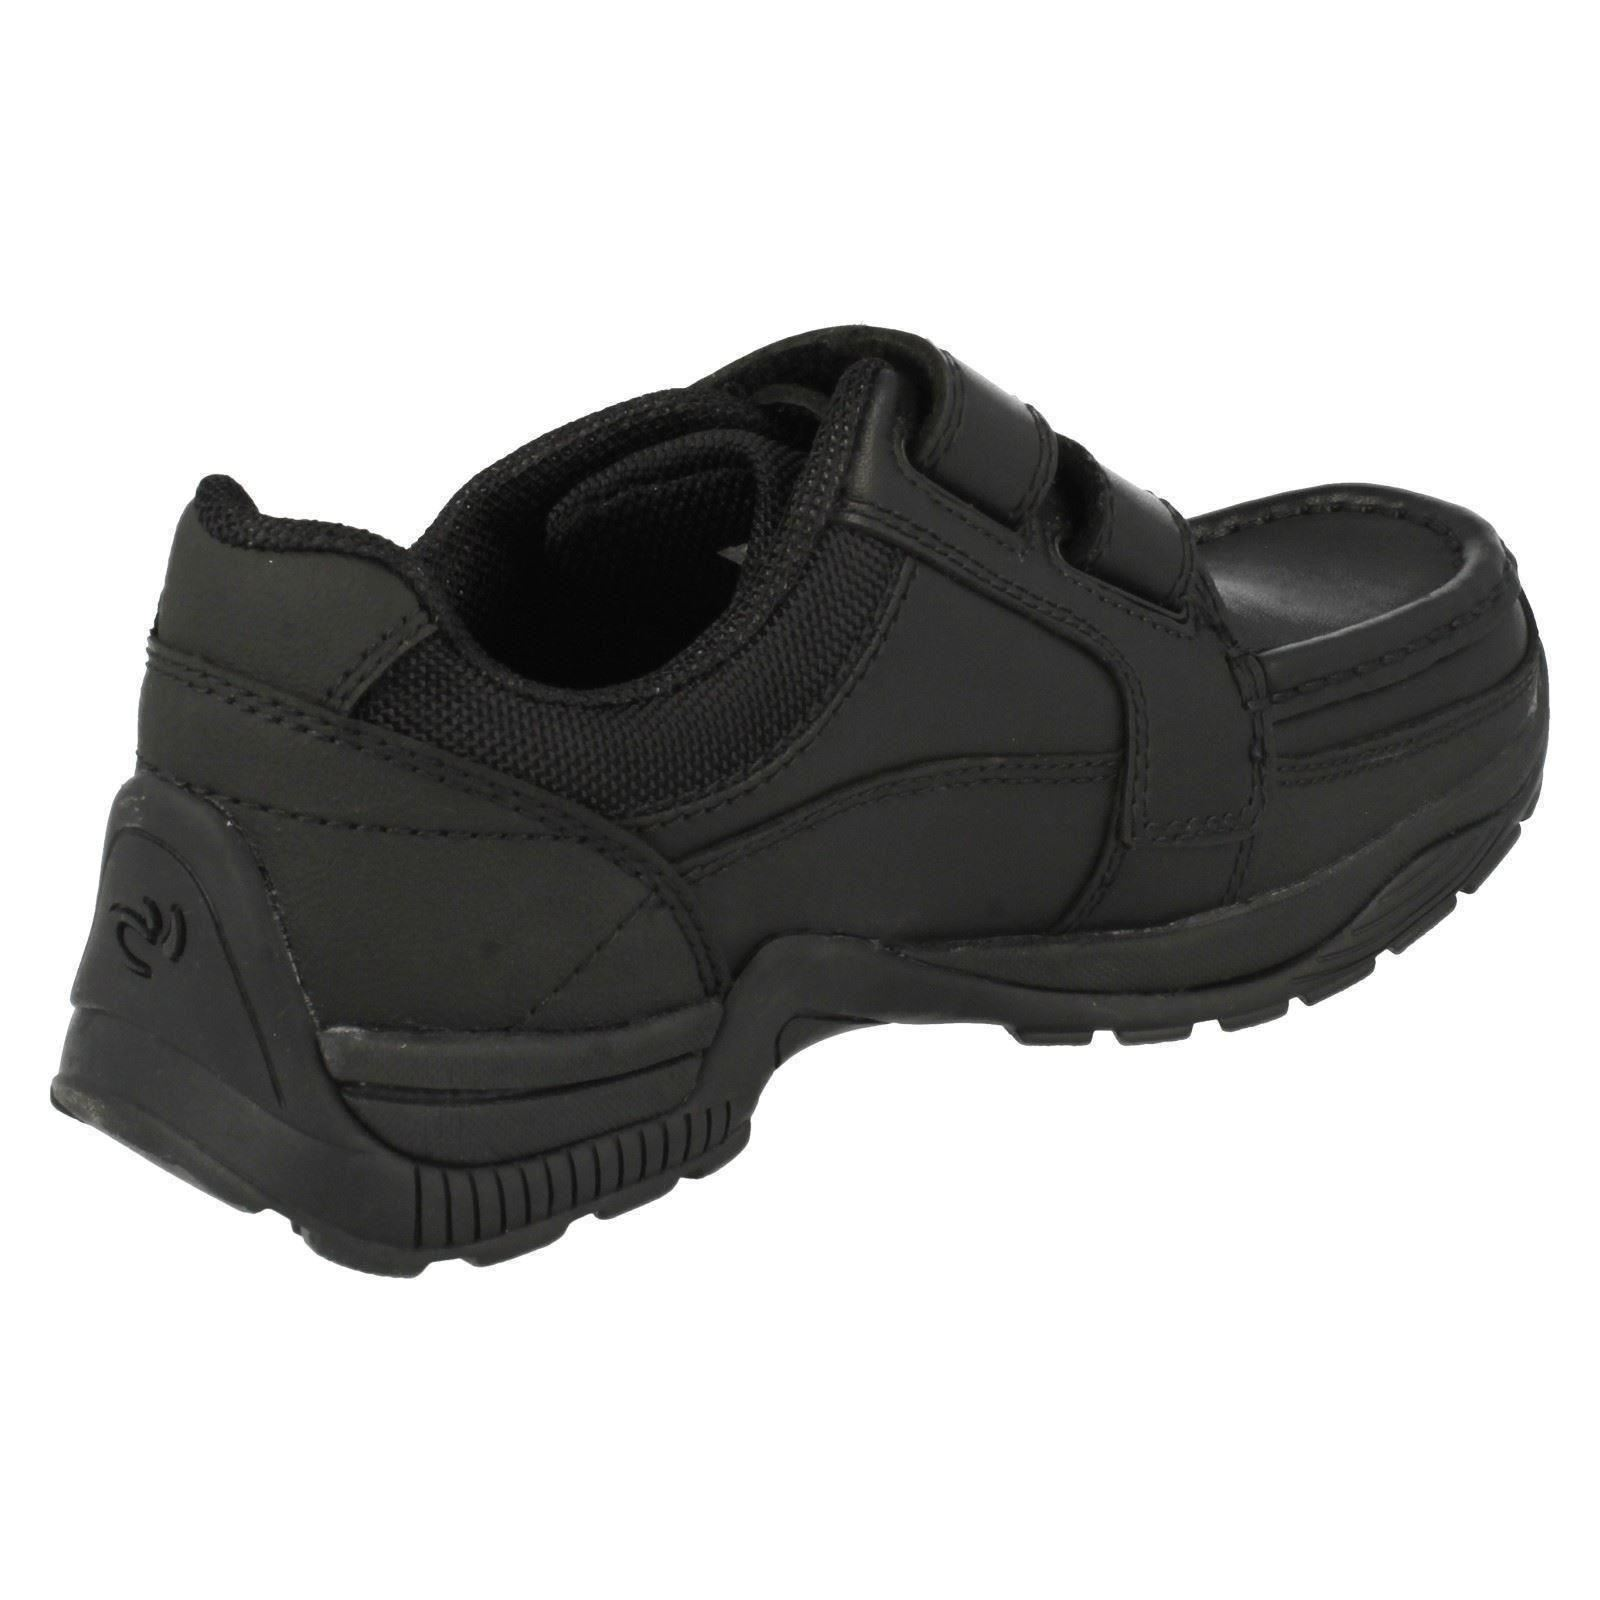 Rhino pour noir Miles By scolaires Chaussures garçons Startrite PfZna6ZUq